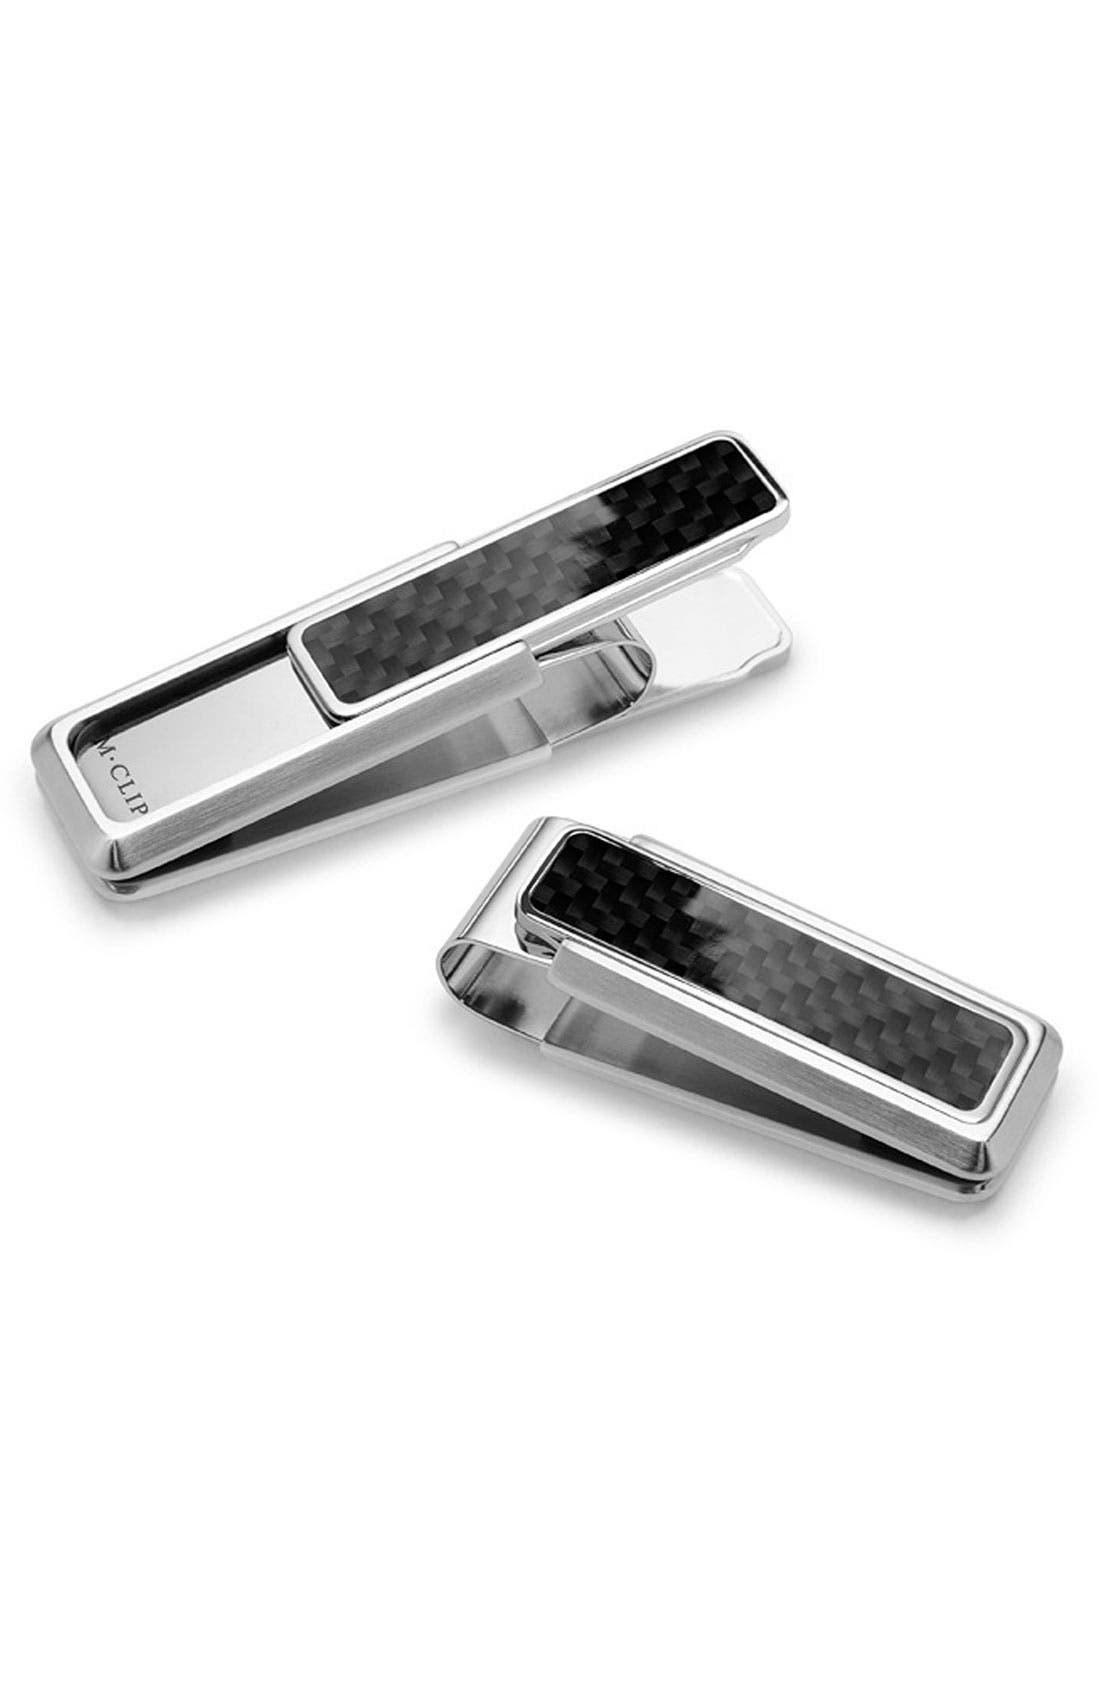 Main Image - M-Clip® 'Discovery Line' Stainless Steel Money Clip